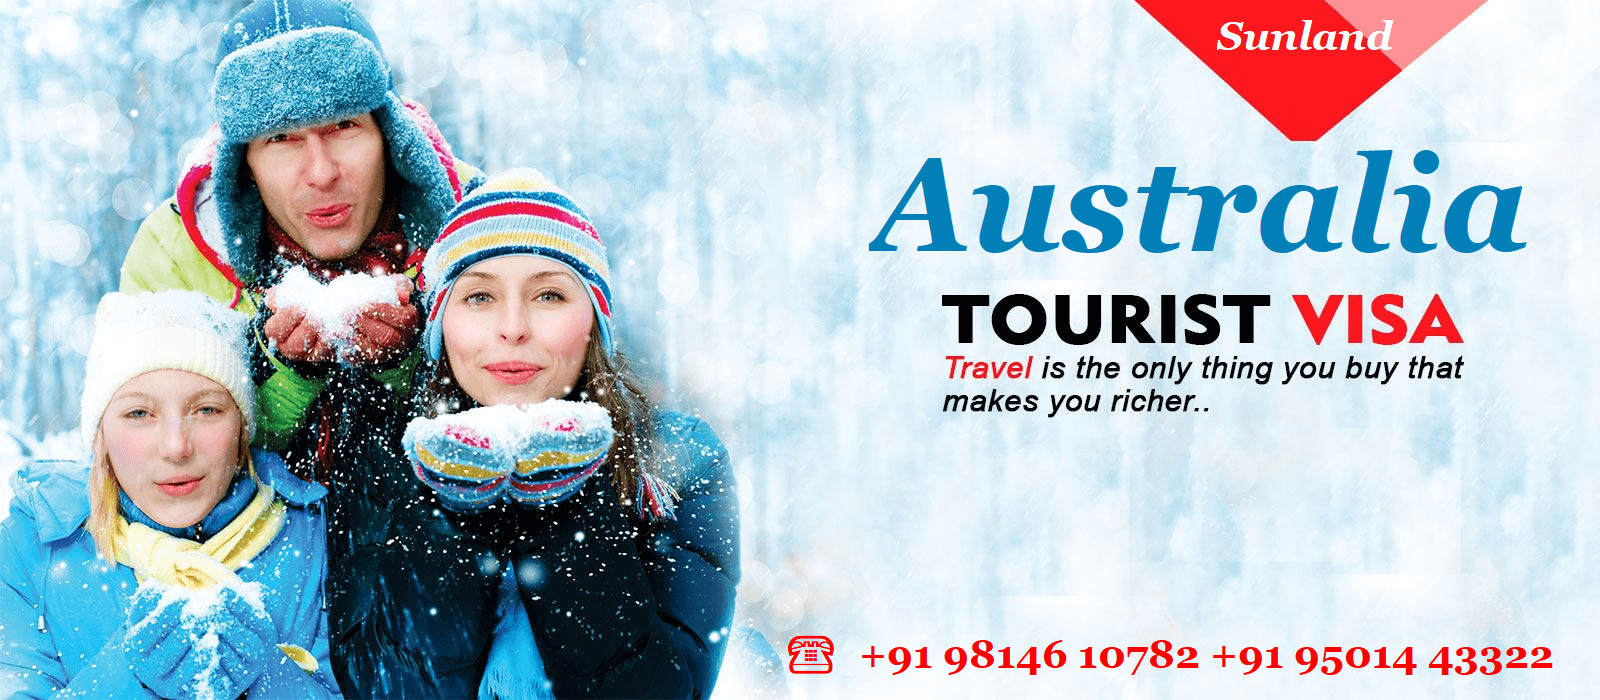 Australia Tourist Visa Expert In Chandigarh